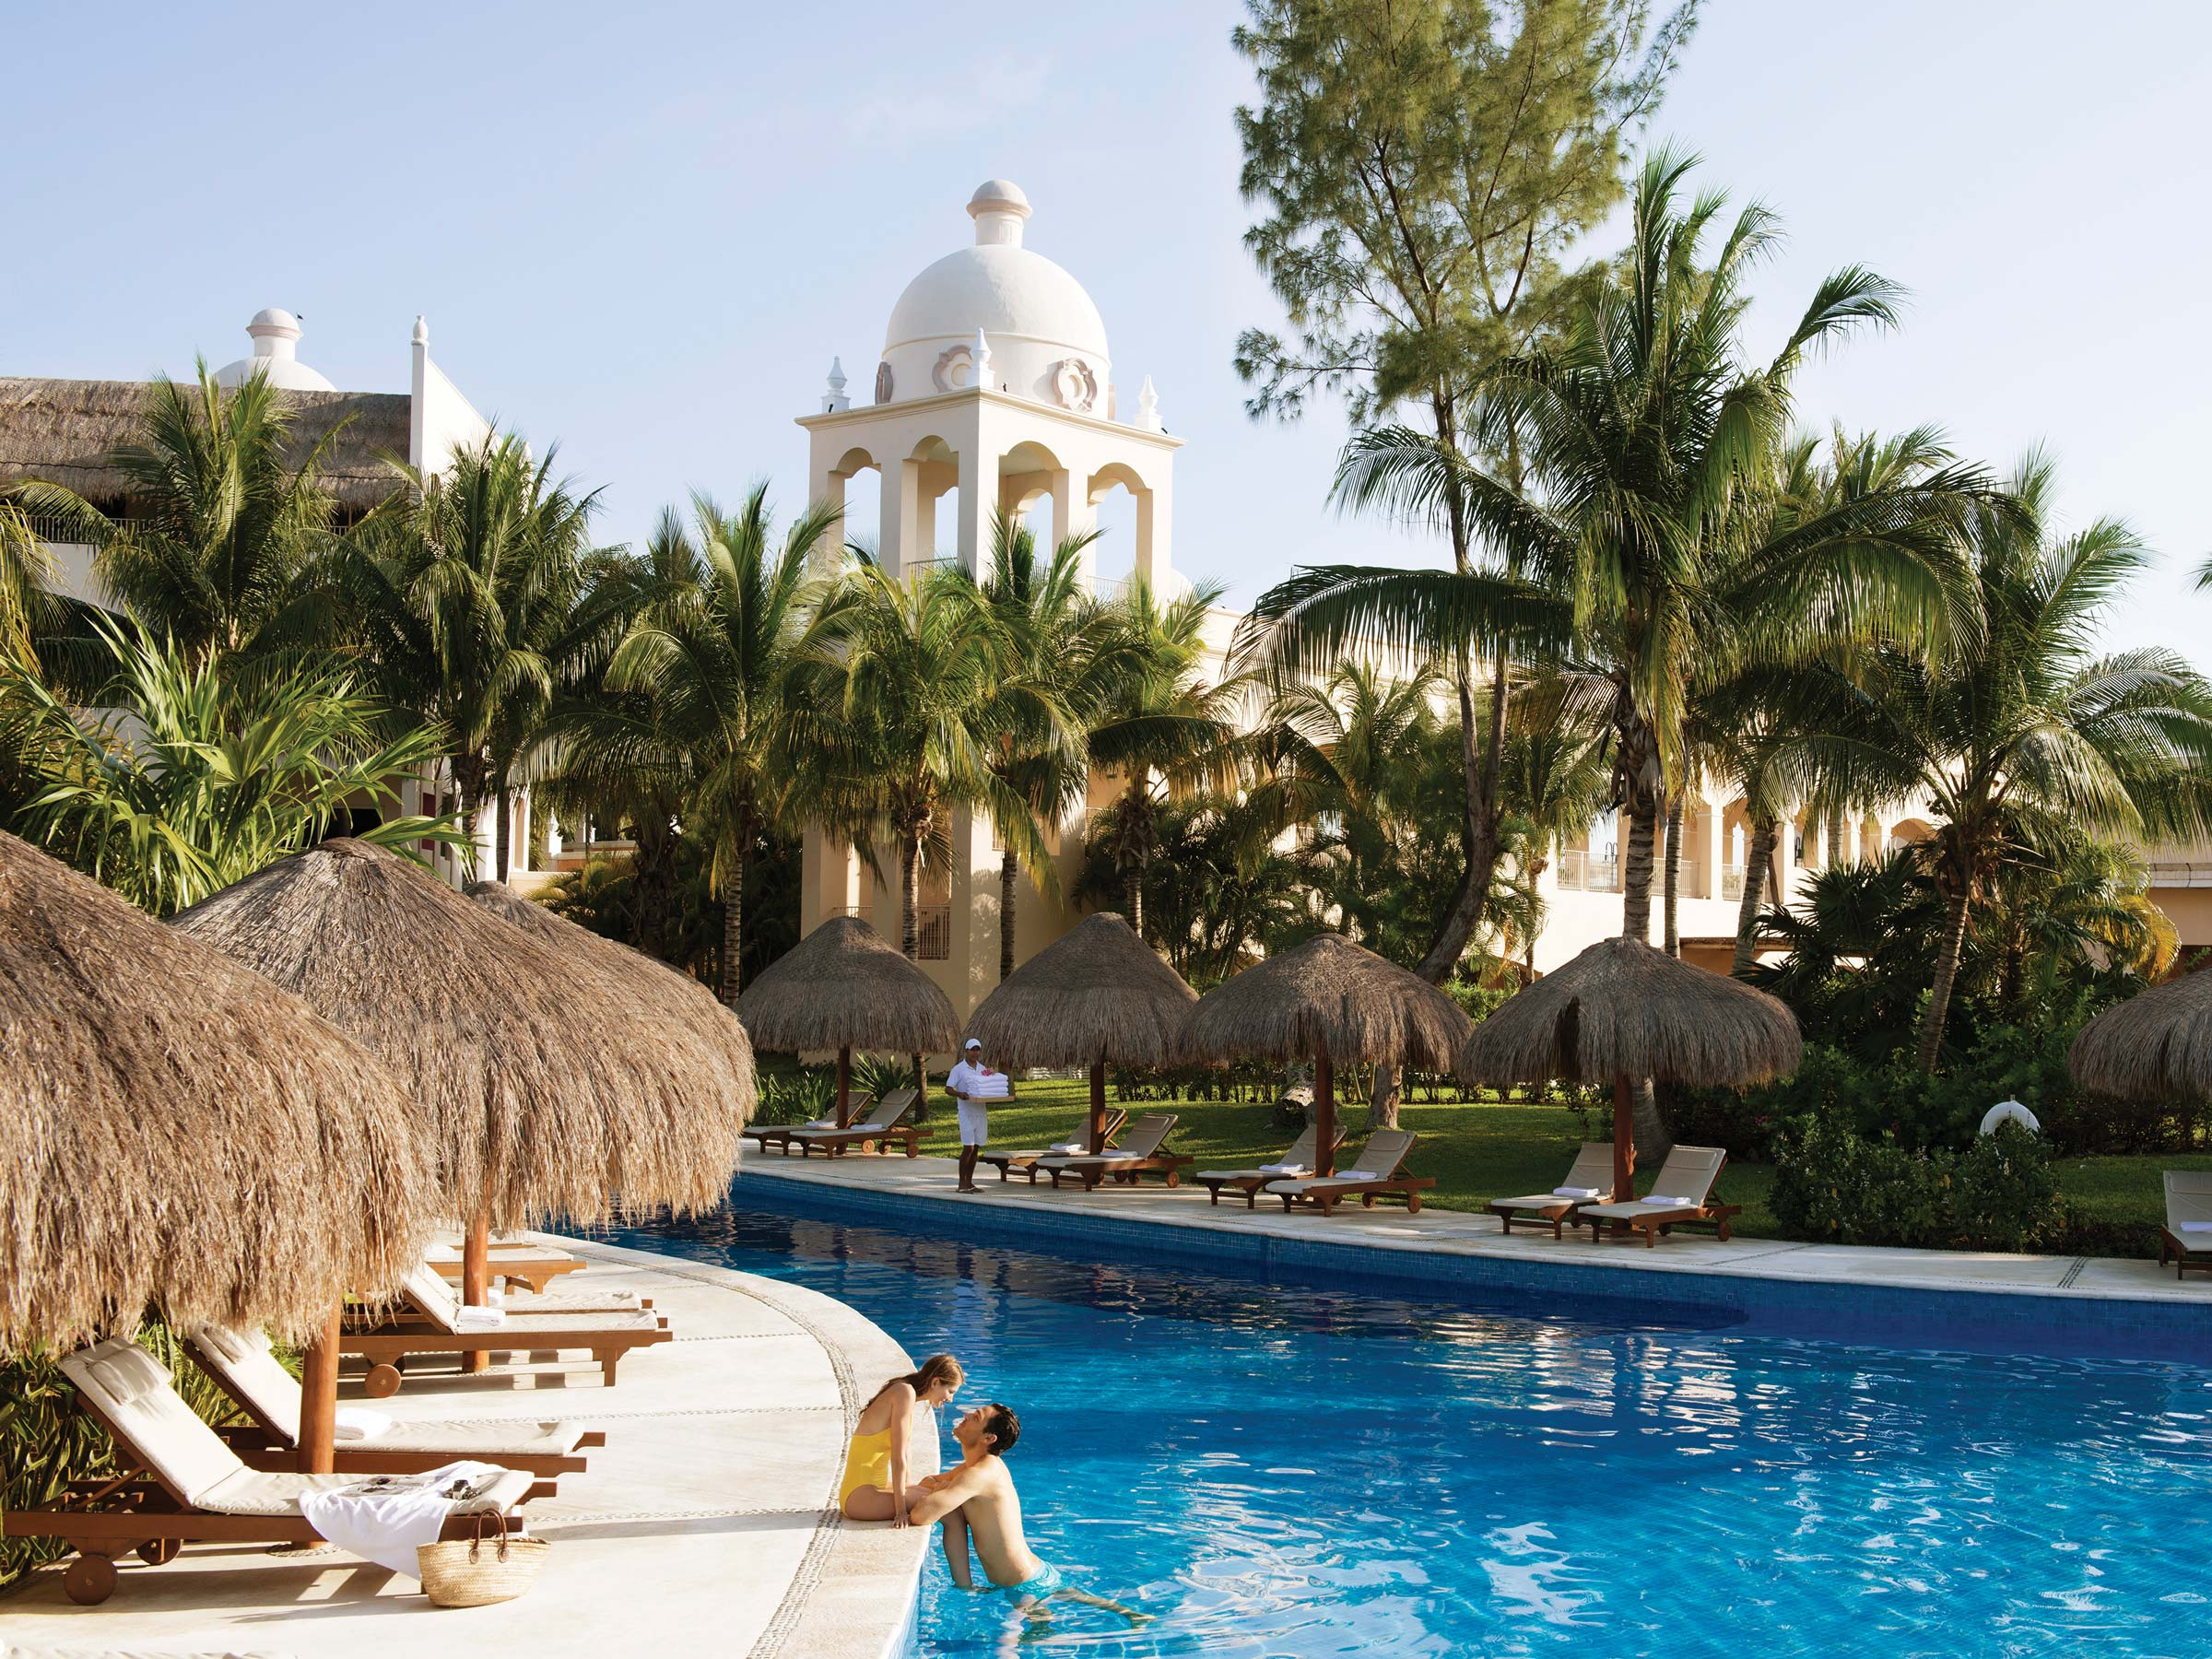 Excellence Riviera Cancun Has Vacation Deals to Riviera Maya Mexico for Your Next Stay